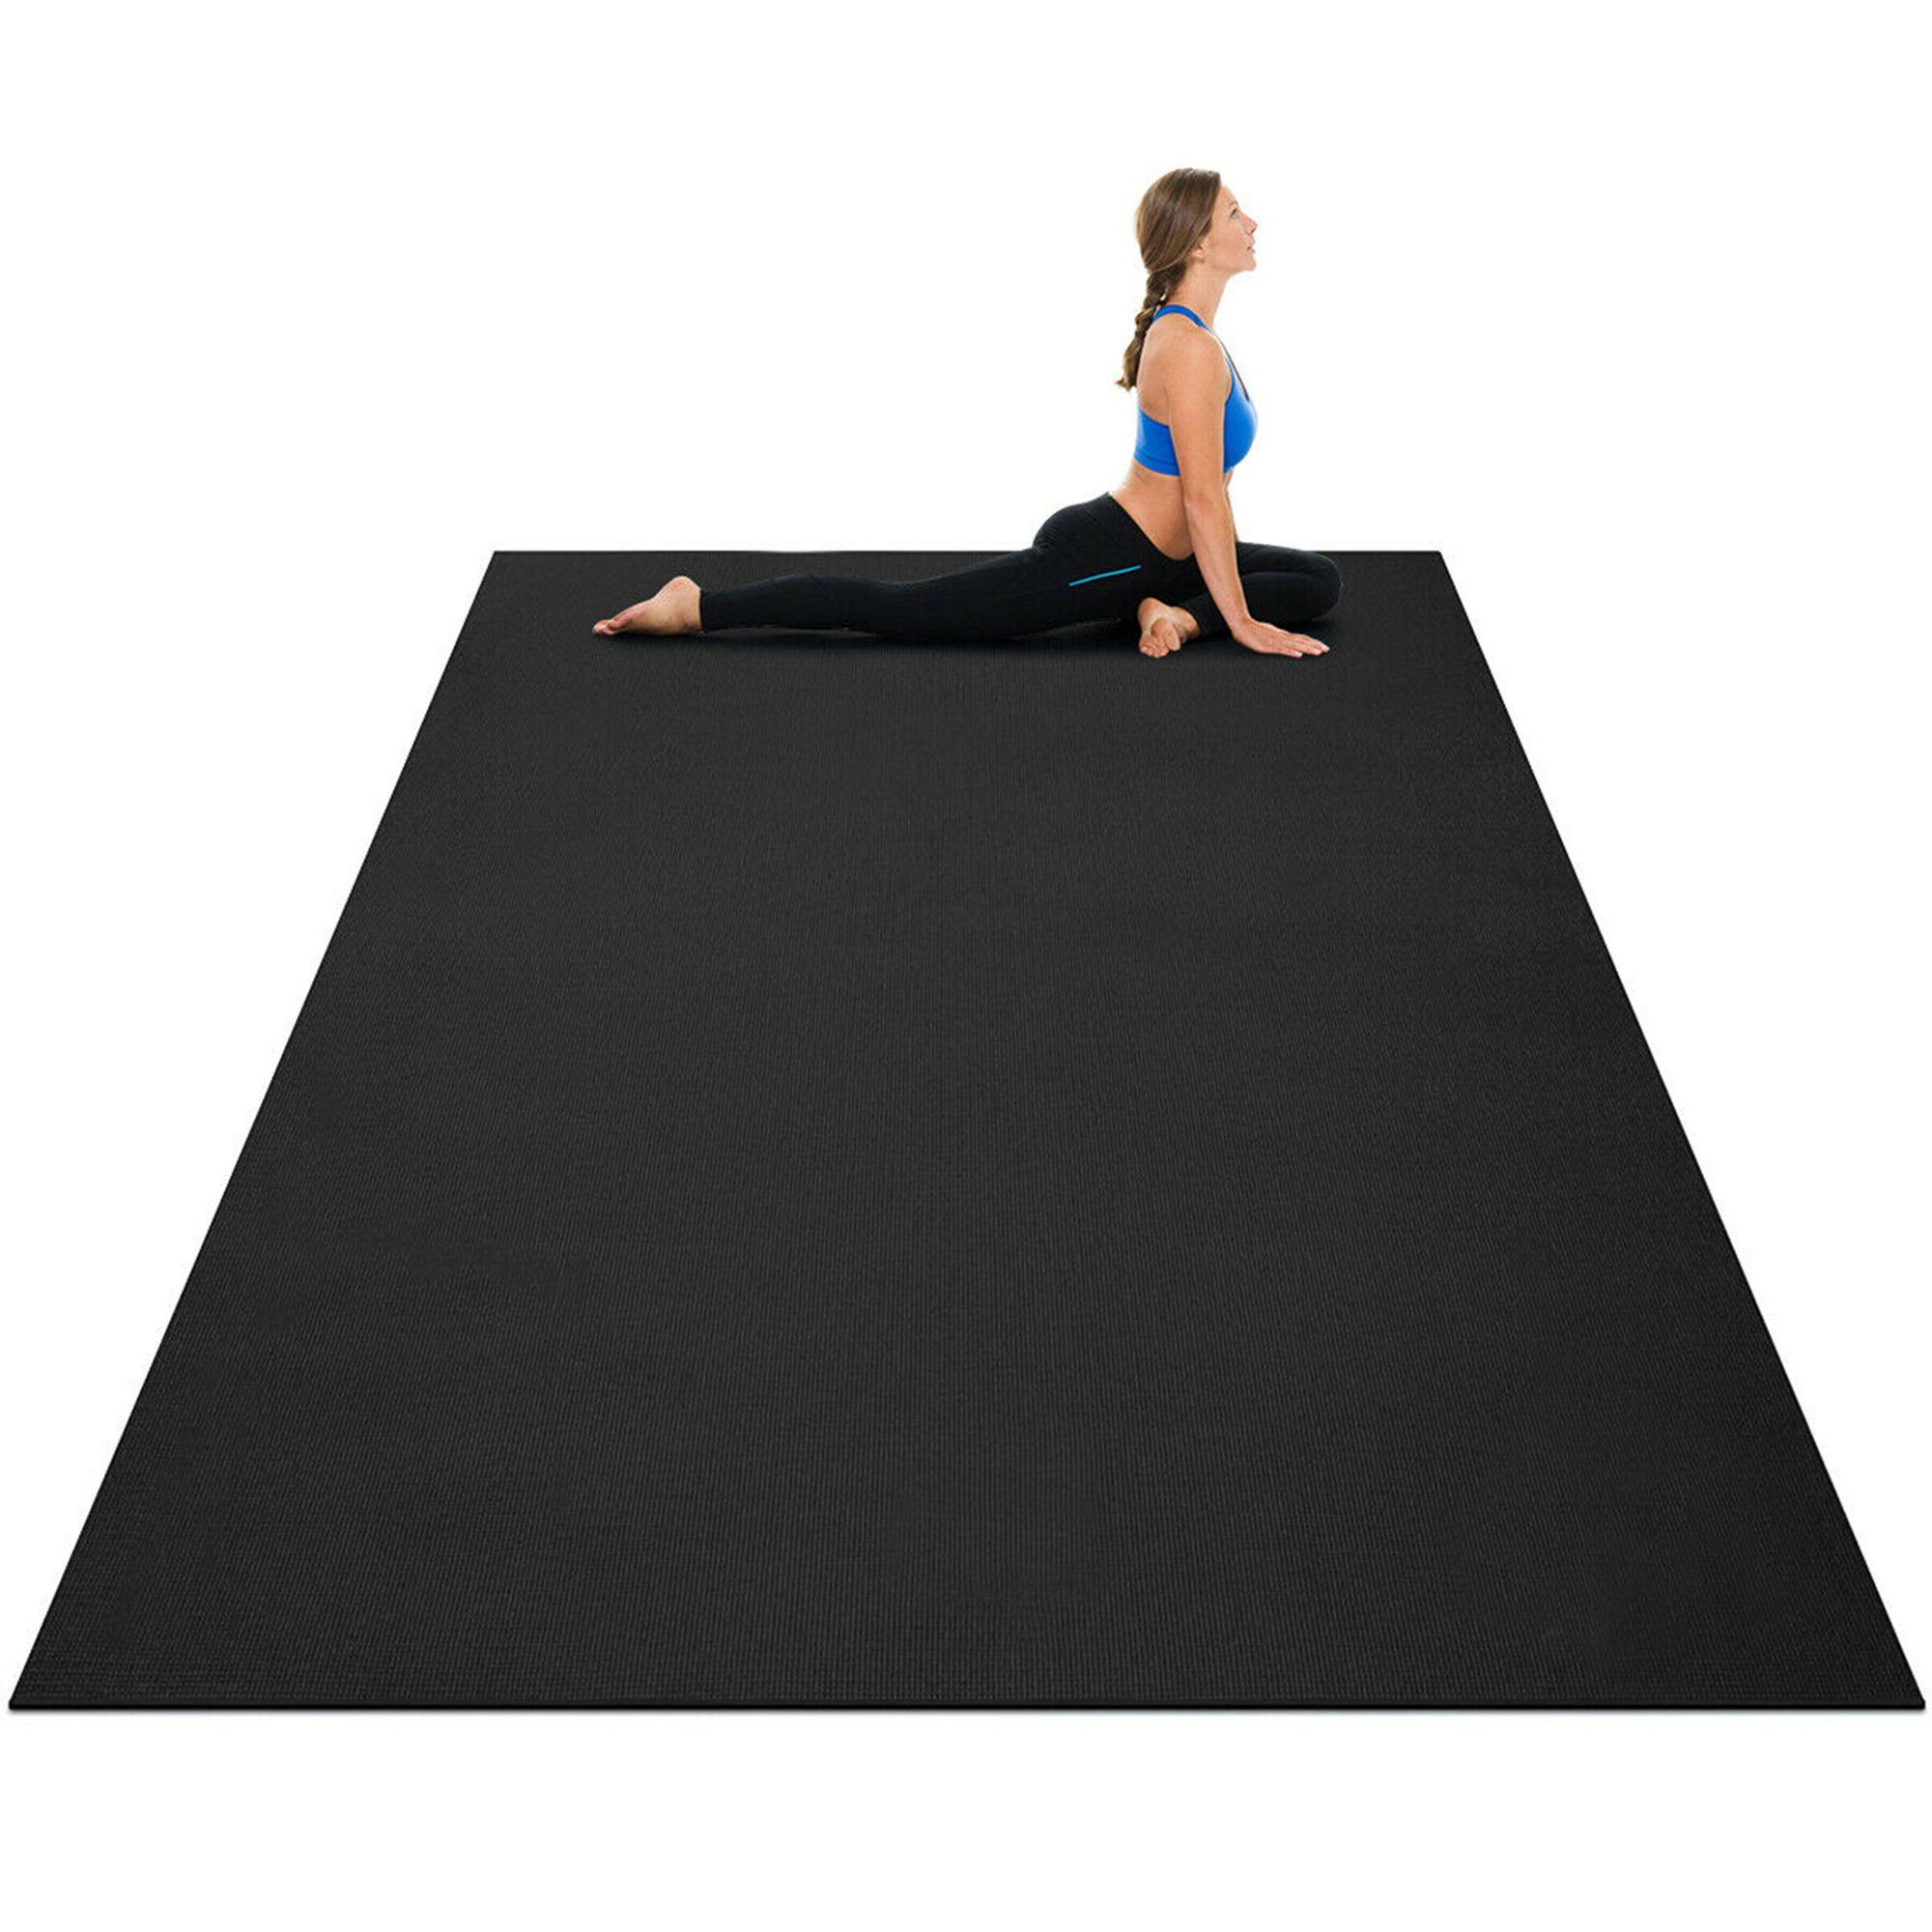 Gymax Large Yoga Mat 7' x 5' x 8 mm Thick Workout Mats for